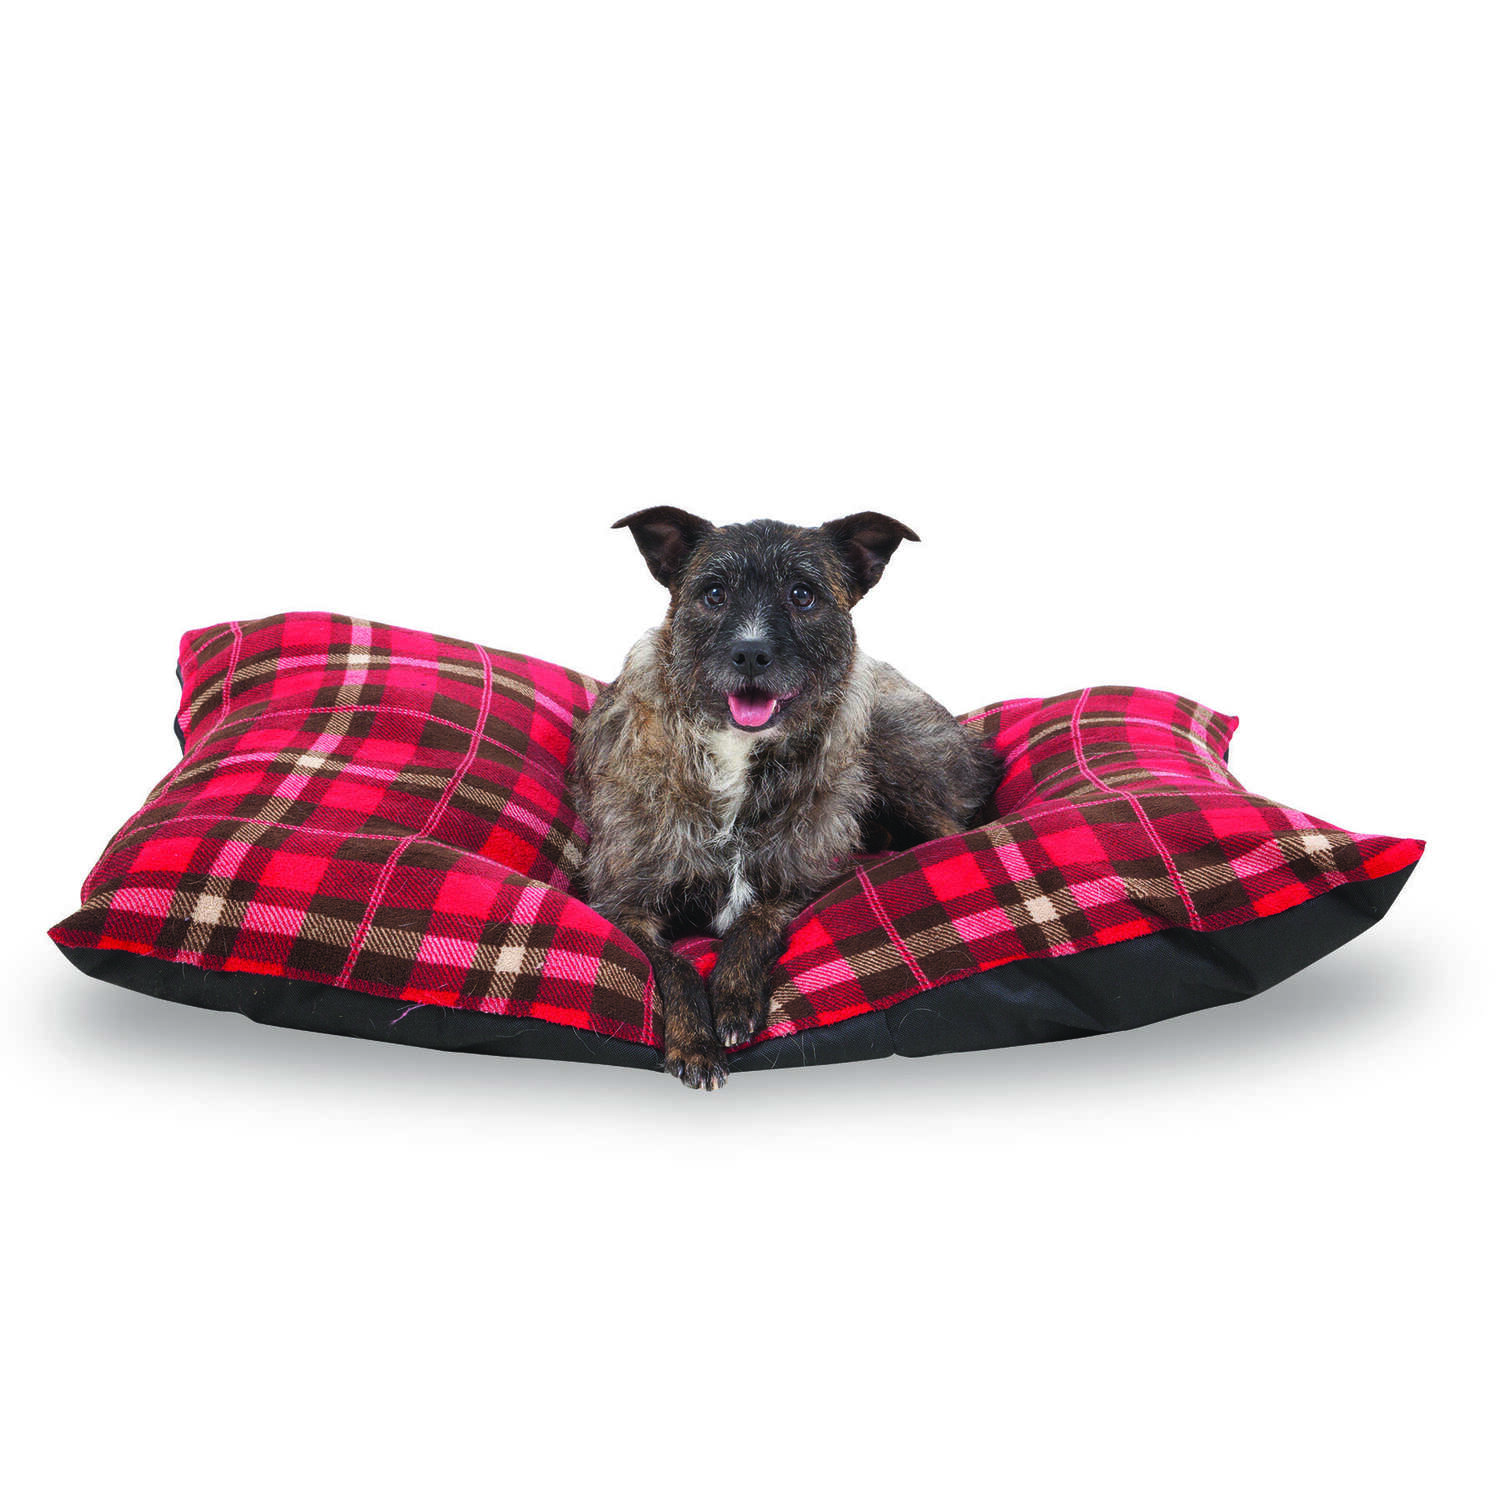 Aspen Pet  Black  Faux Micro Suede  Rectangle  3 in. H x 36 in. W x 27 in. L Pet Bed